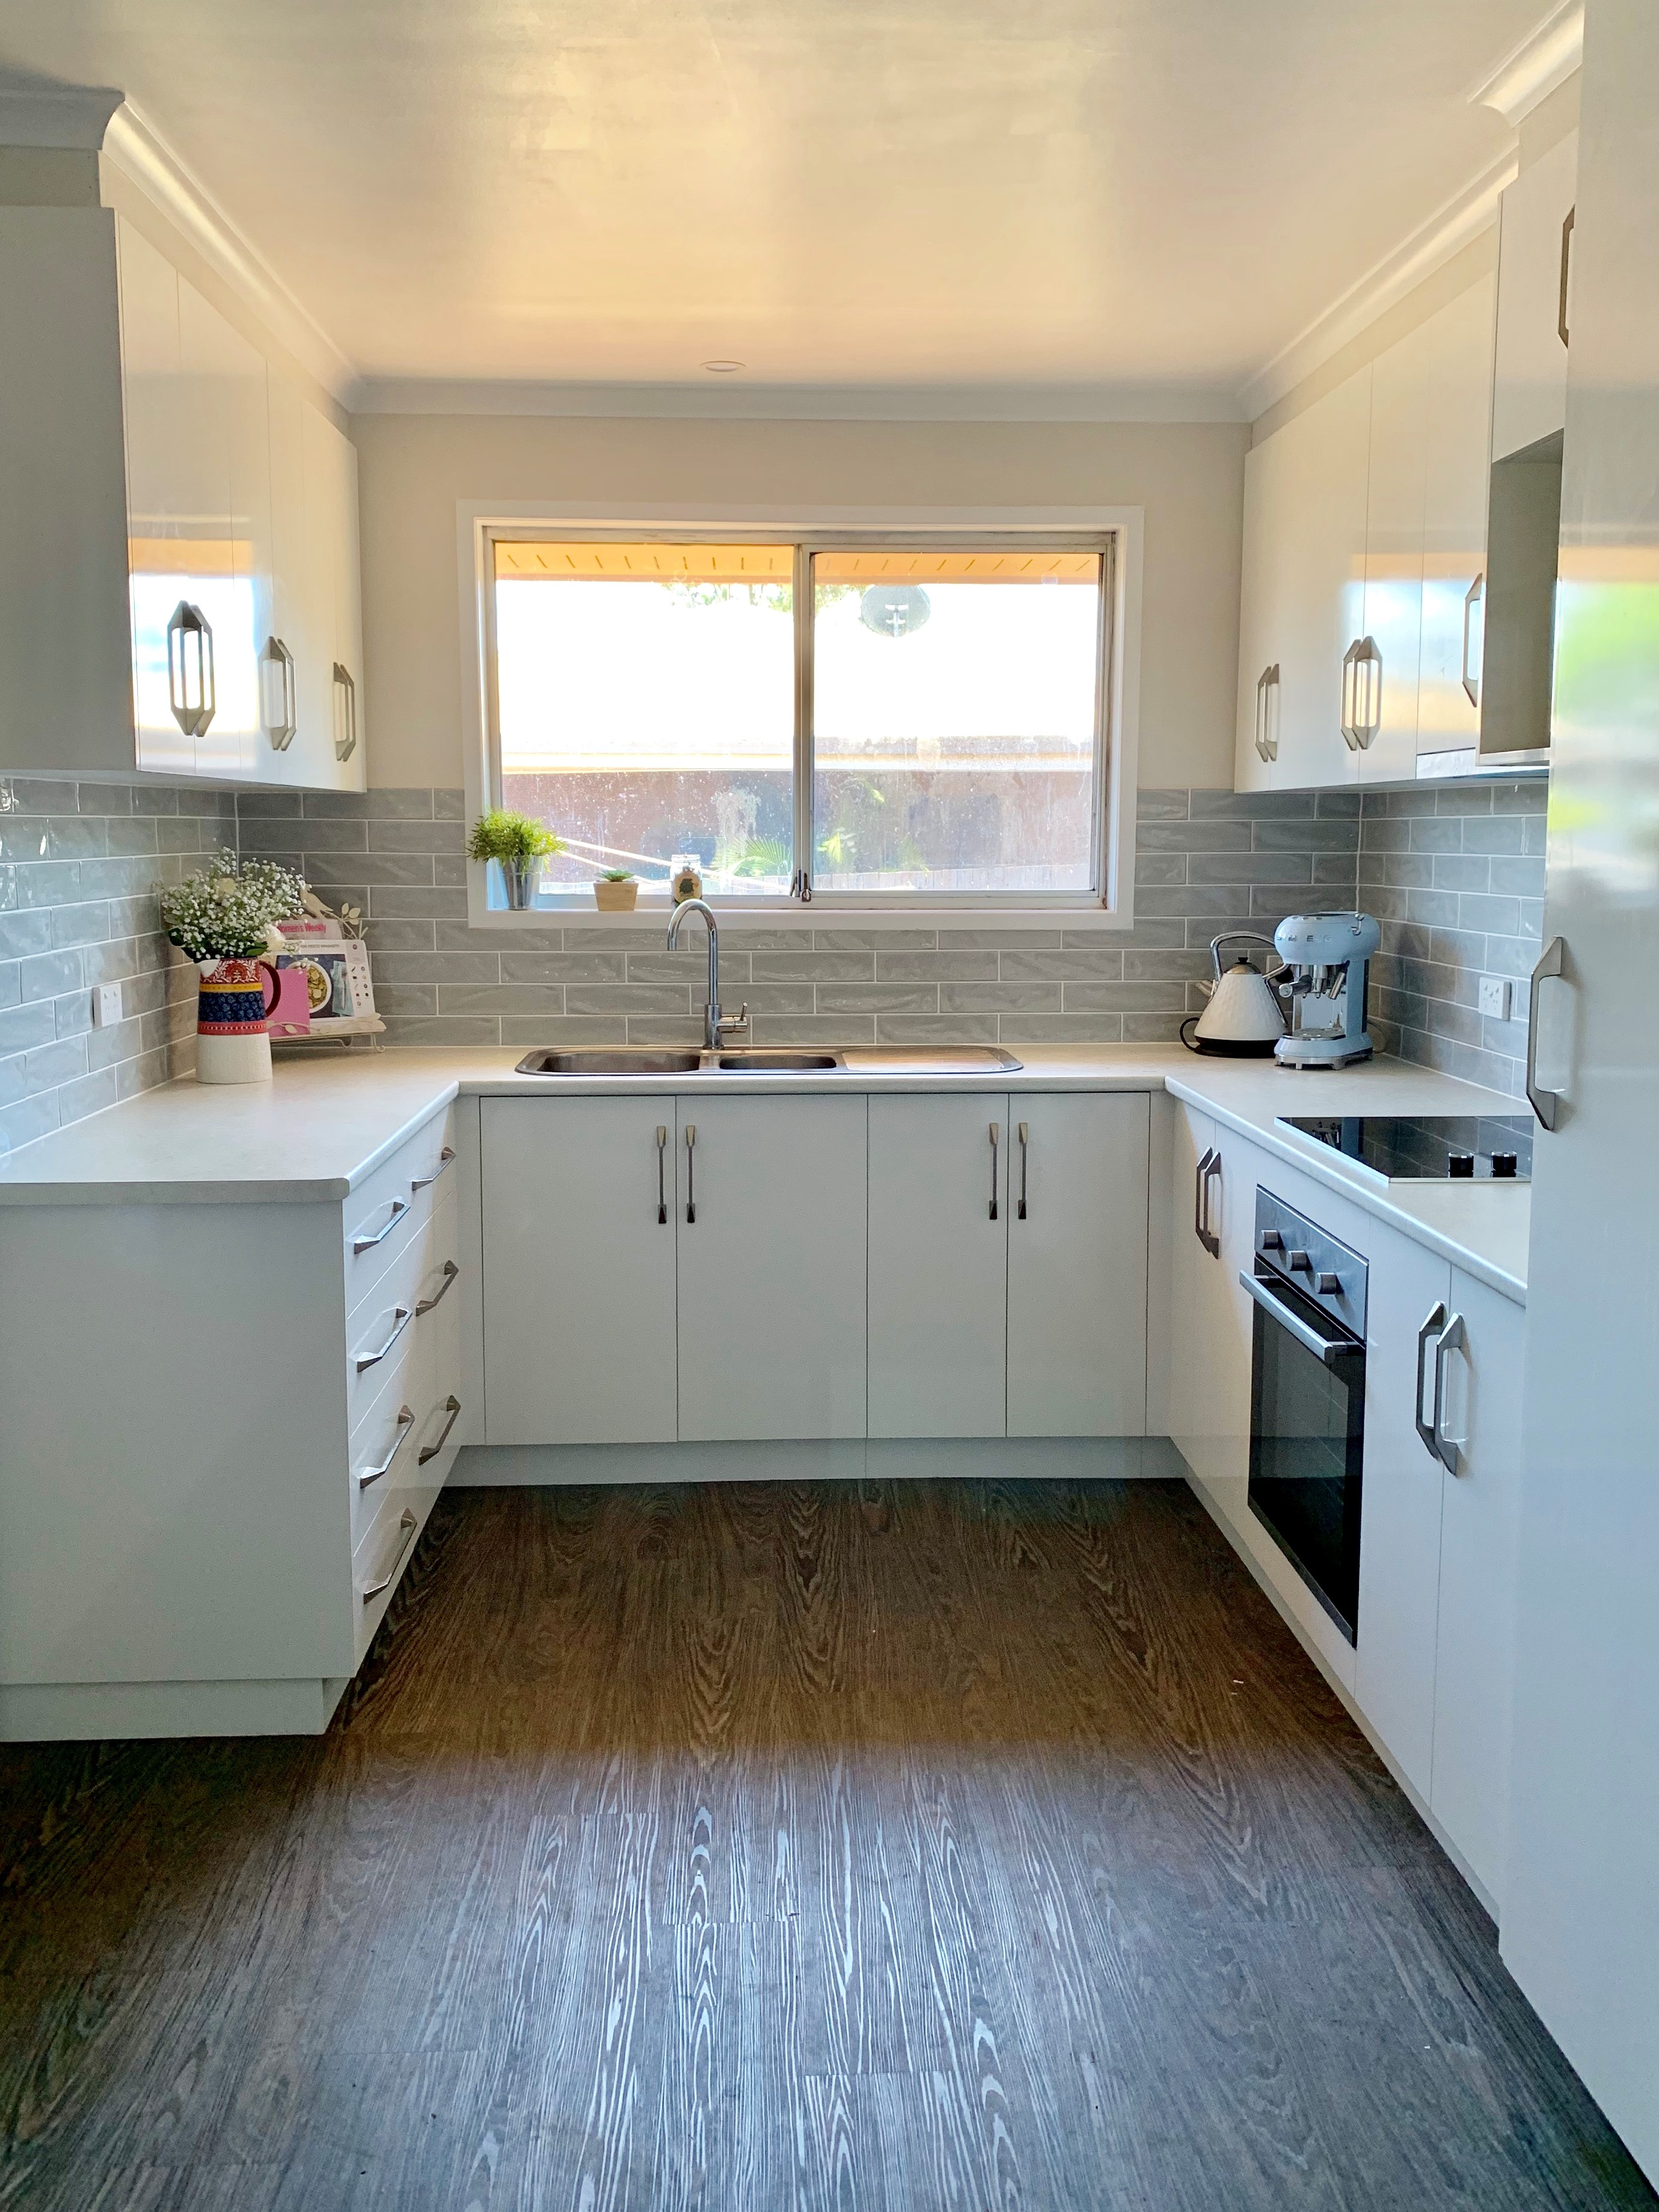 Toowoomba Bathroom Renovations - Kitchens